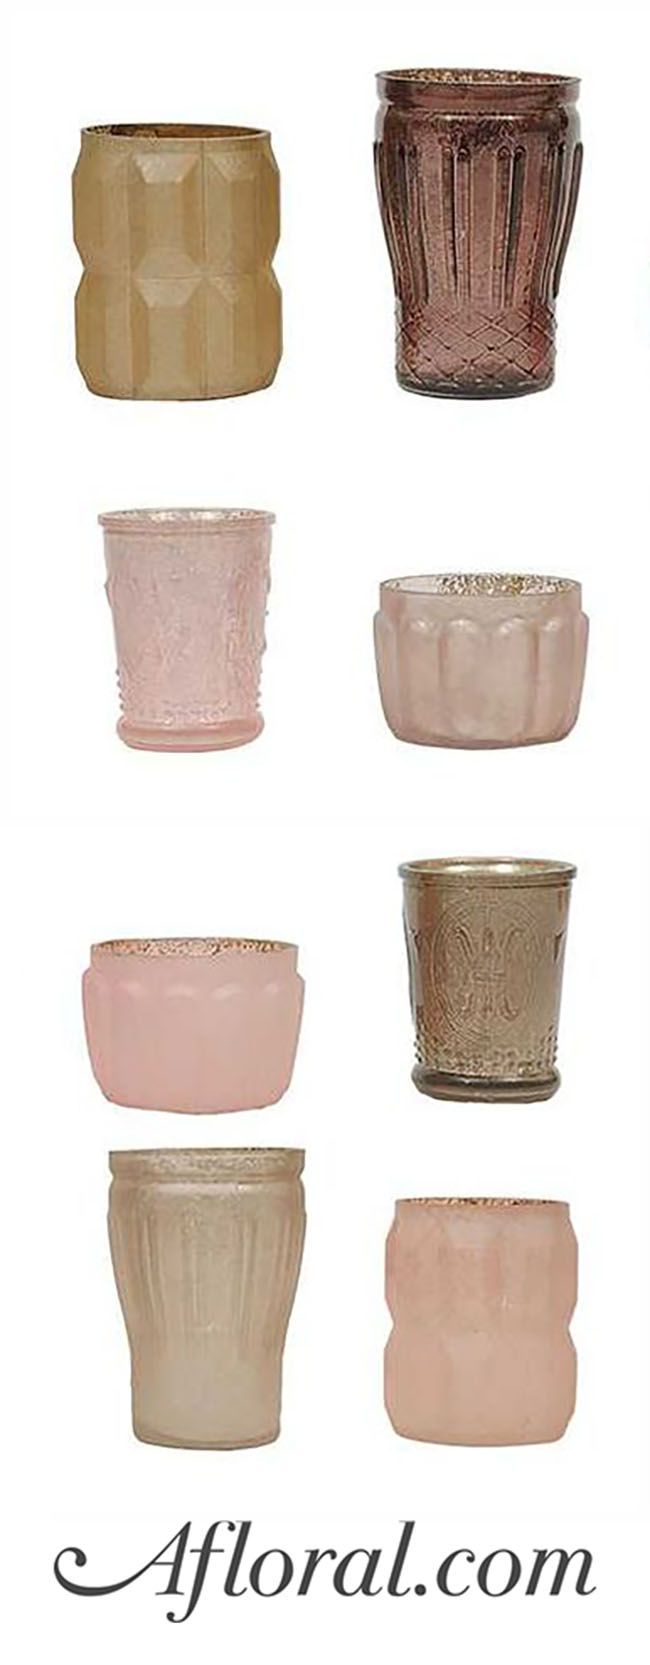 Gorgeous mercury glass tea light holders in cream, blush pinks, and taupe with an antique, vintage look. Just add candlelight to these beautiful glass votives to create a stylish wedding centerpiece!